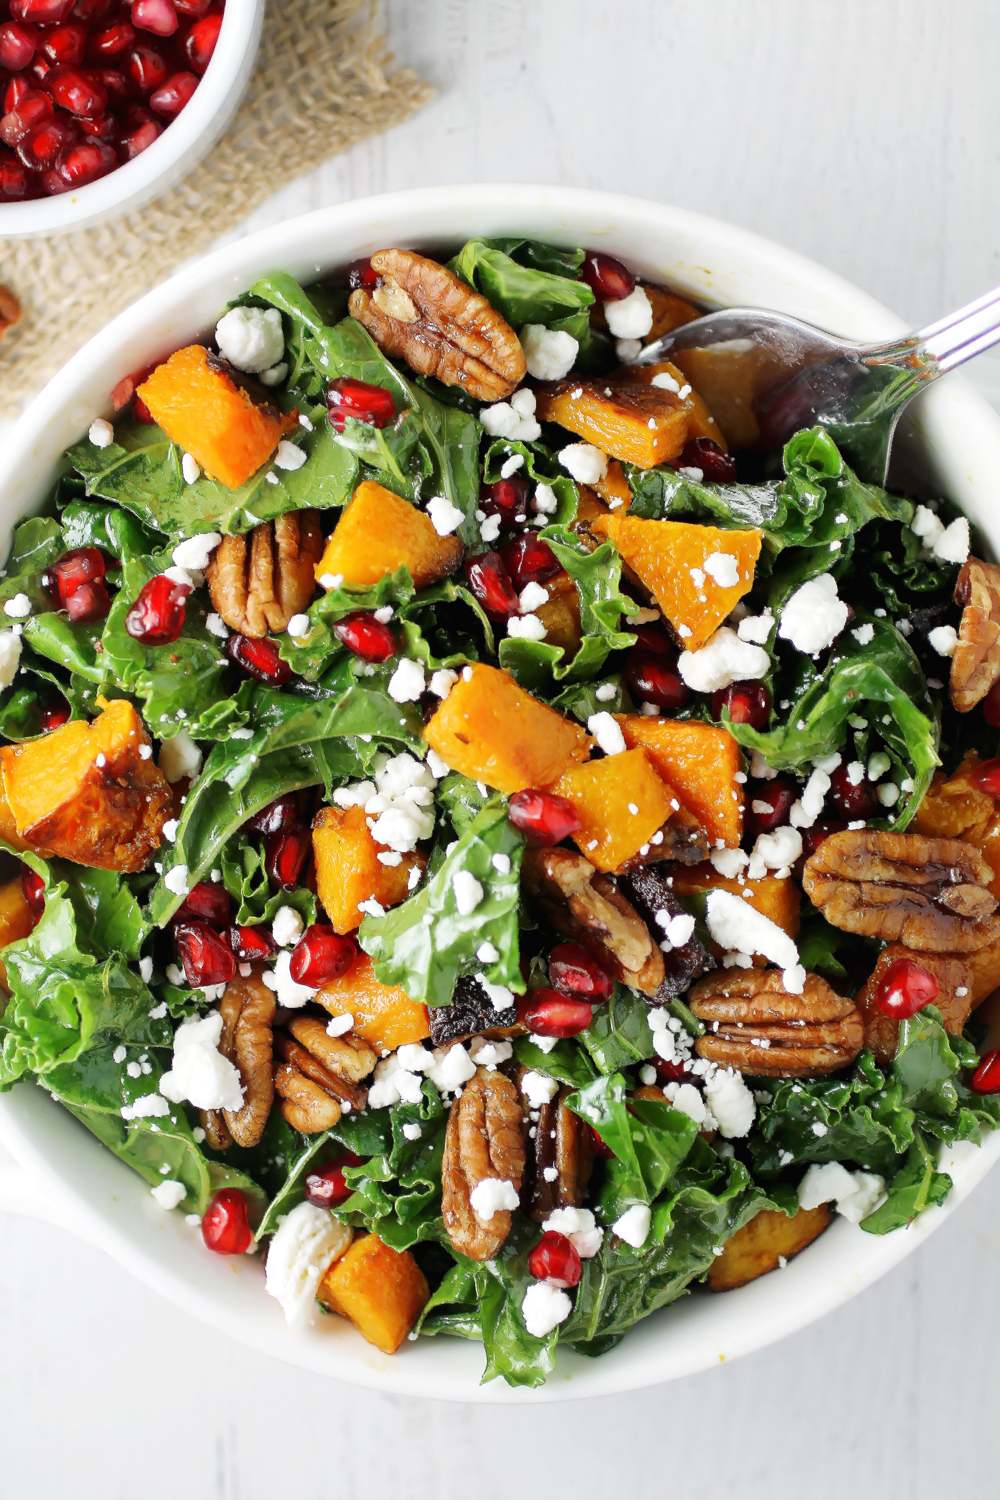 Butternut Squash and Kale Salad with Pomegranate and Maple Pecans